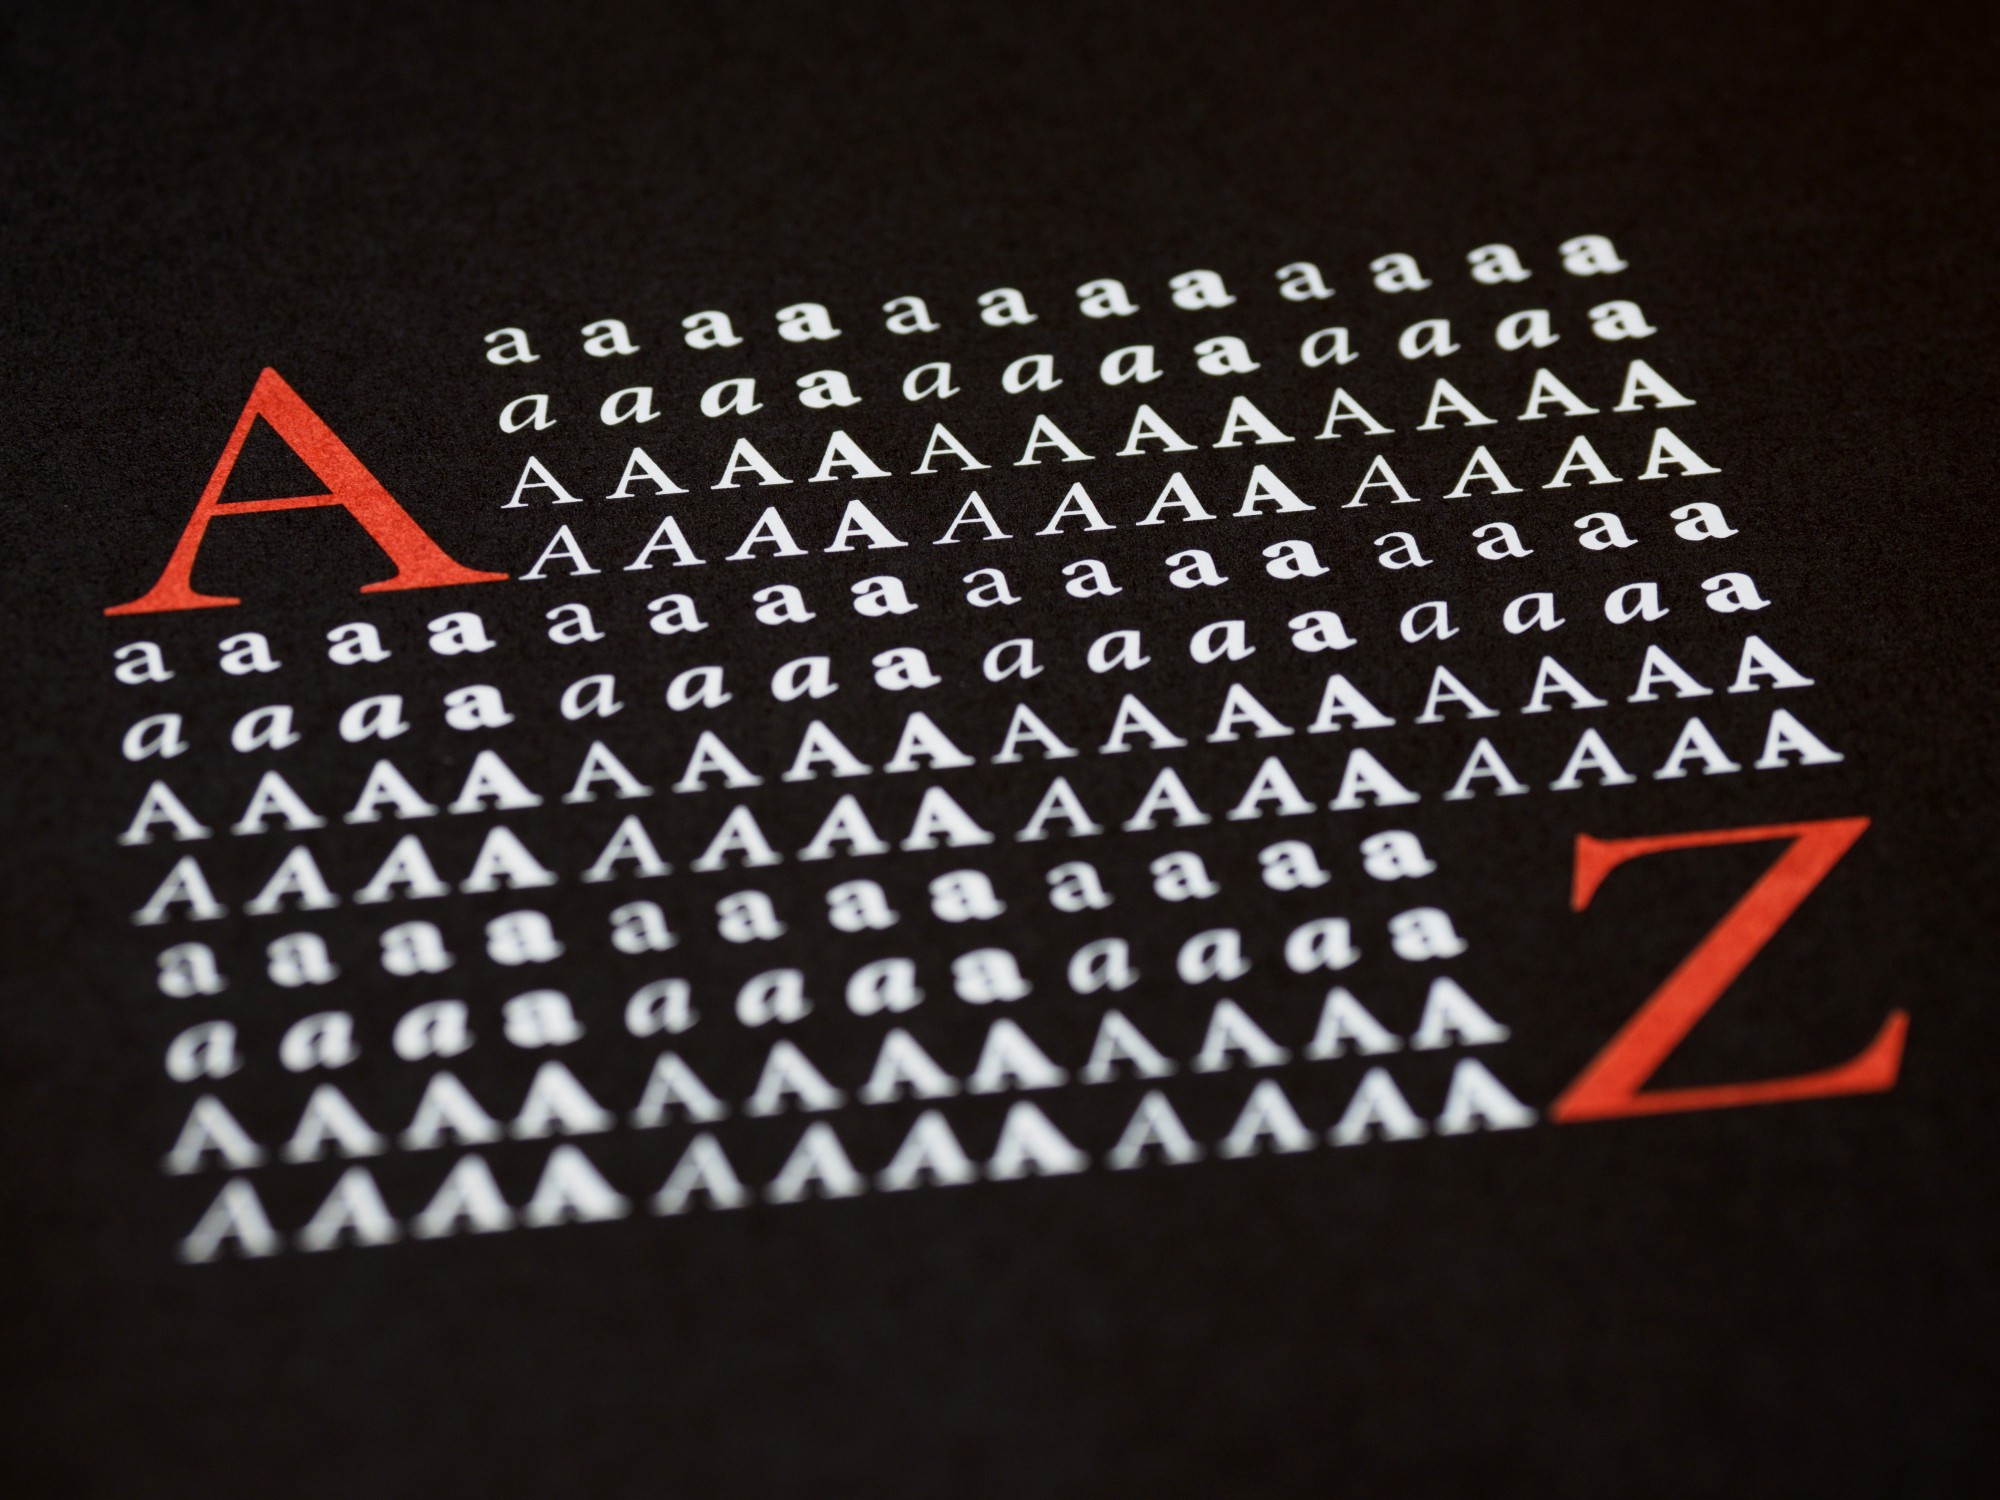 Different A-Z fonts